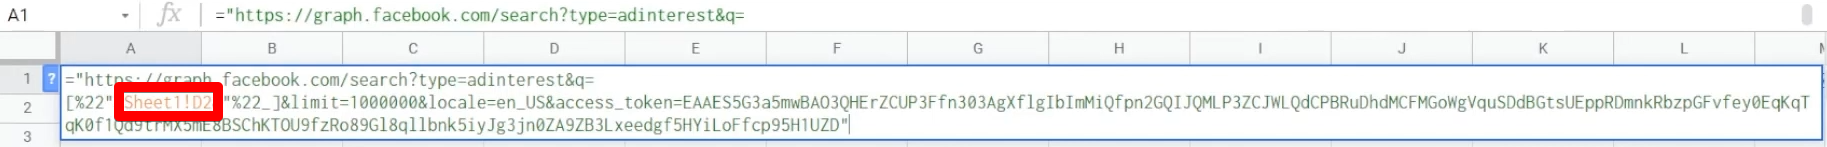 Variable in the URL in Google Sheets